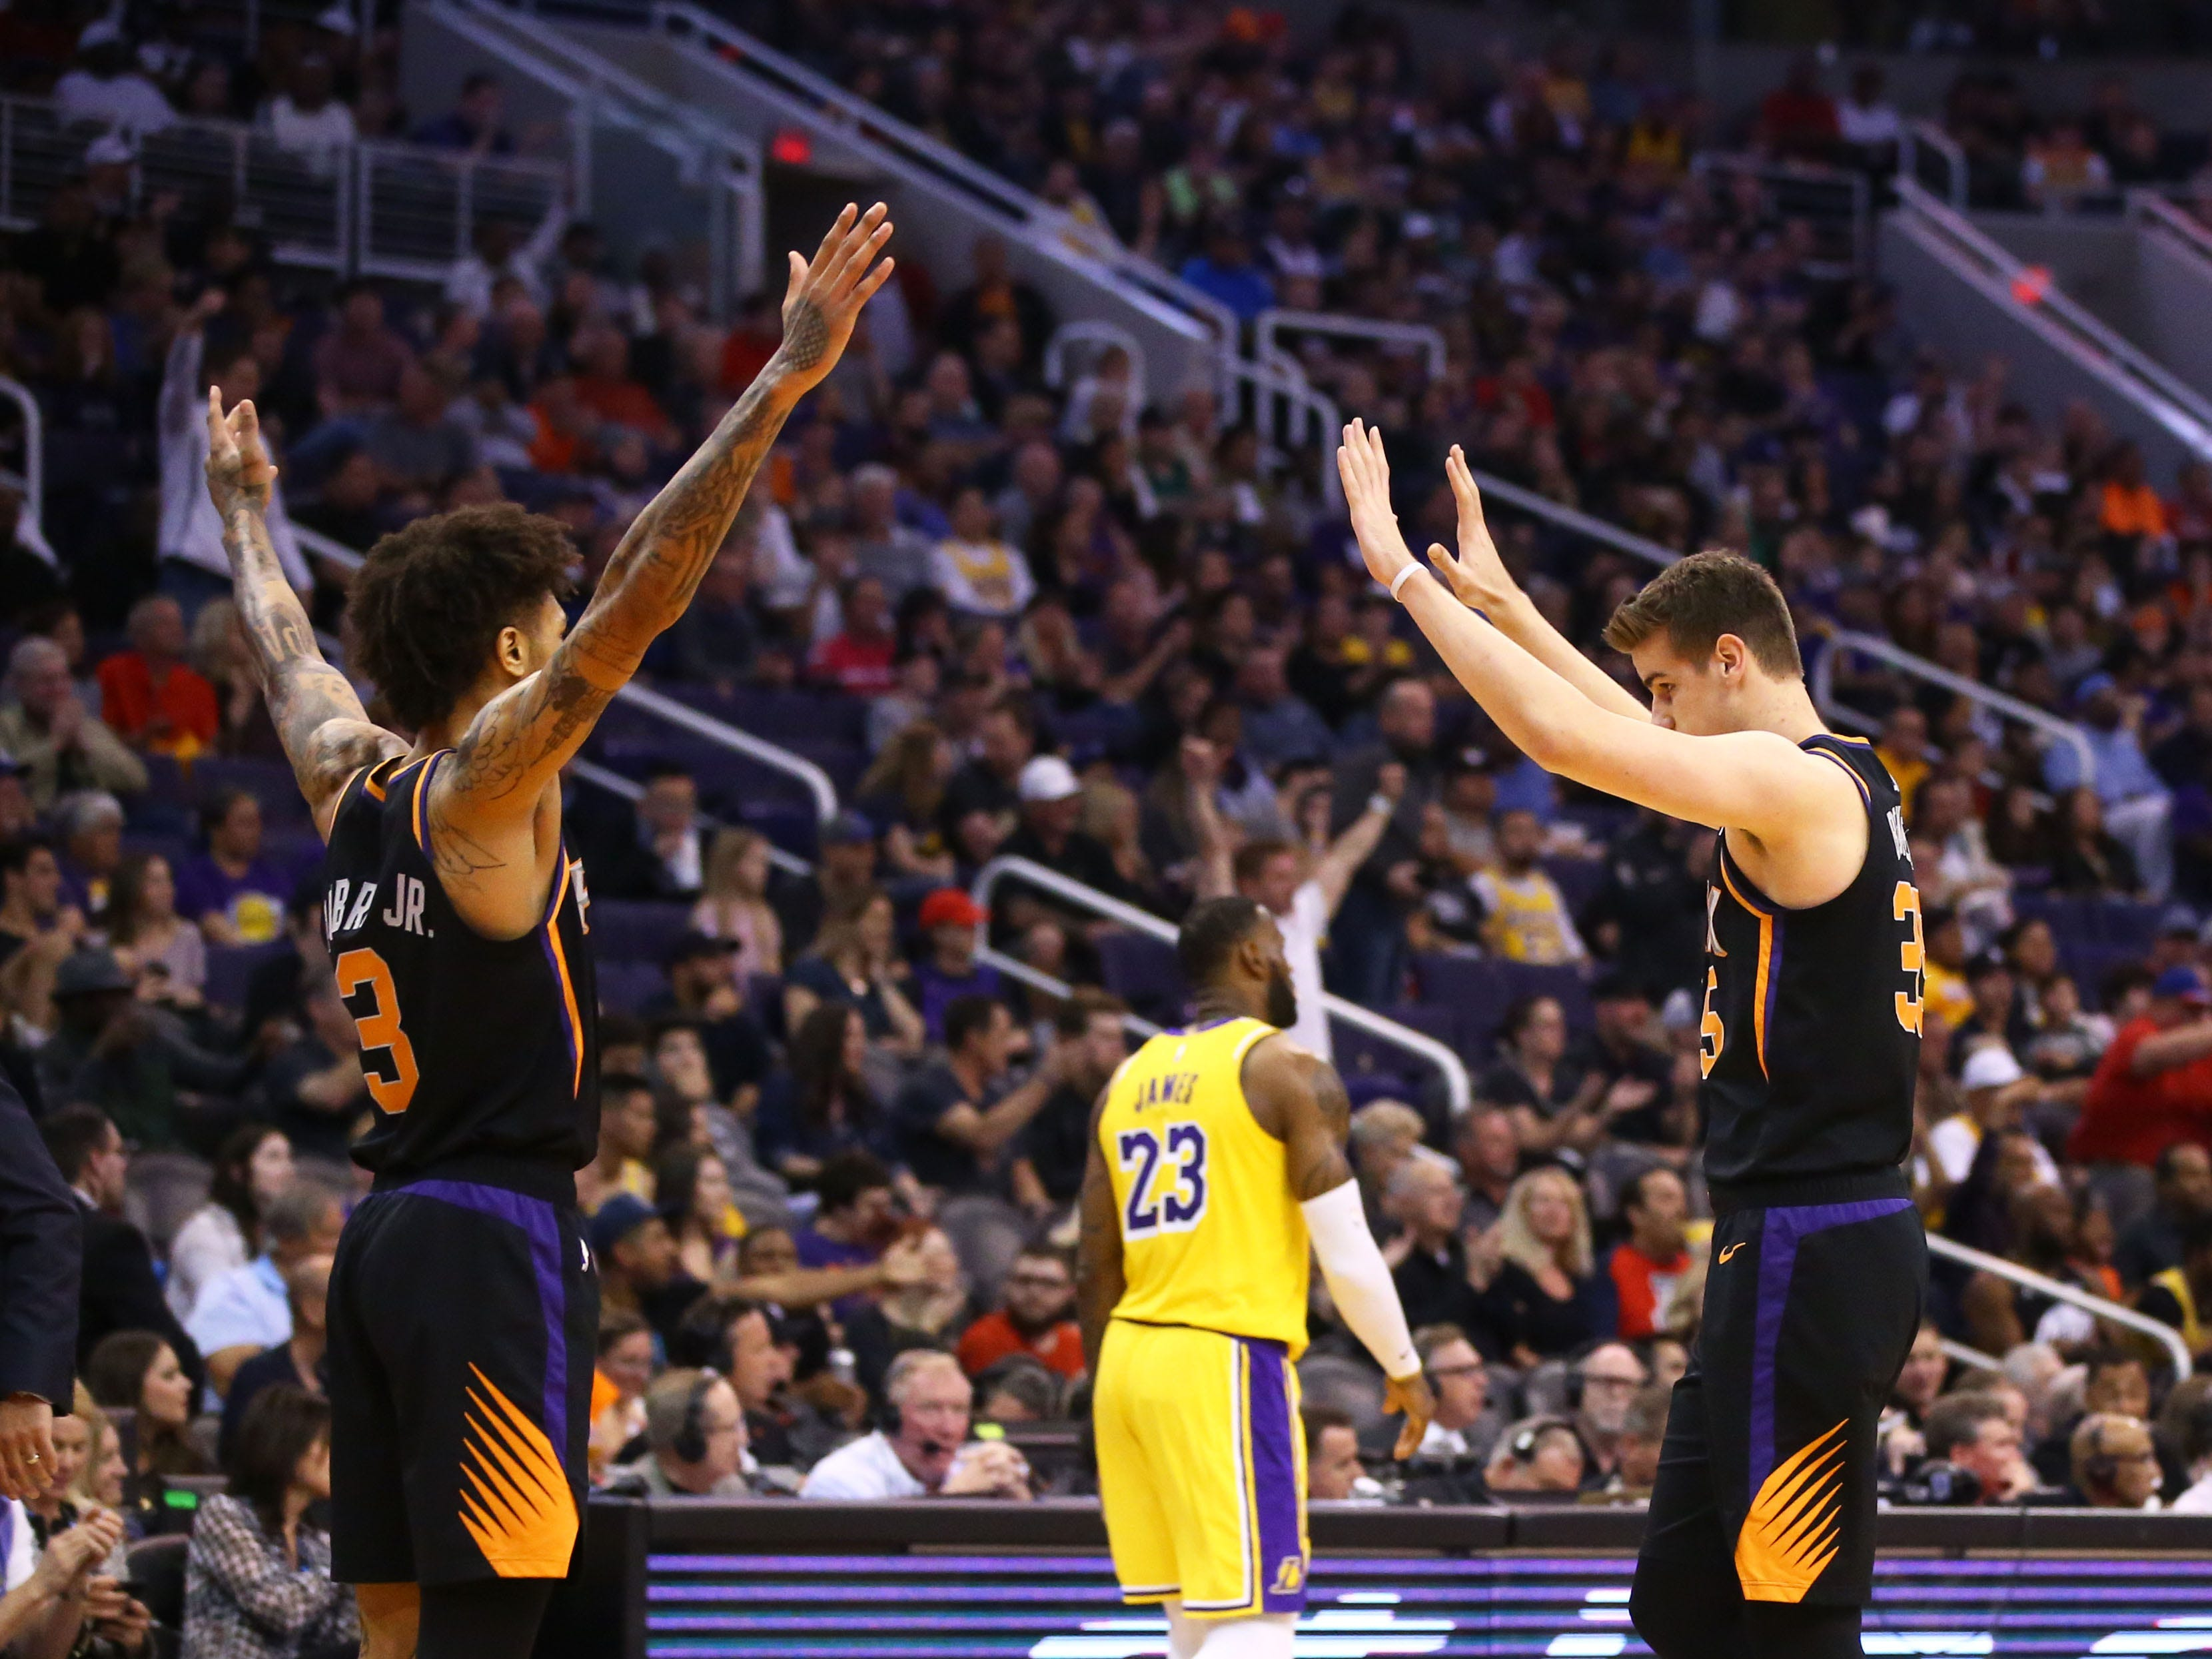 Phoenix Suns forward Kelly Oubre Jr. (3) and Phoenix Suns forward Dragan Bender (35) celebrate as Los Angeles Lakers forward LeBron James (23) walks to the bench in the second half on Mar. 2, 2019, at Talking Stick Resort Arena in Phoenix, Ariz.